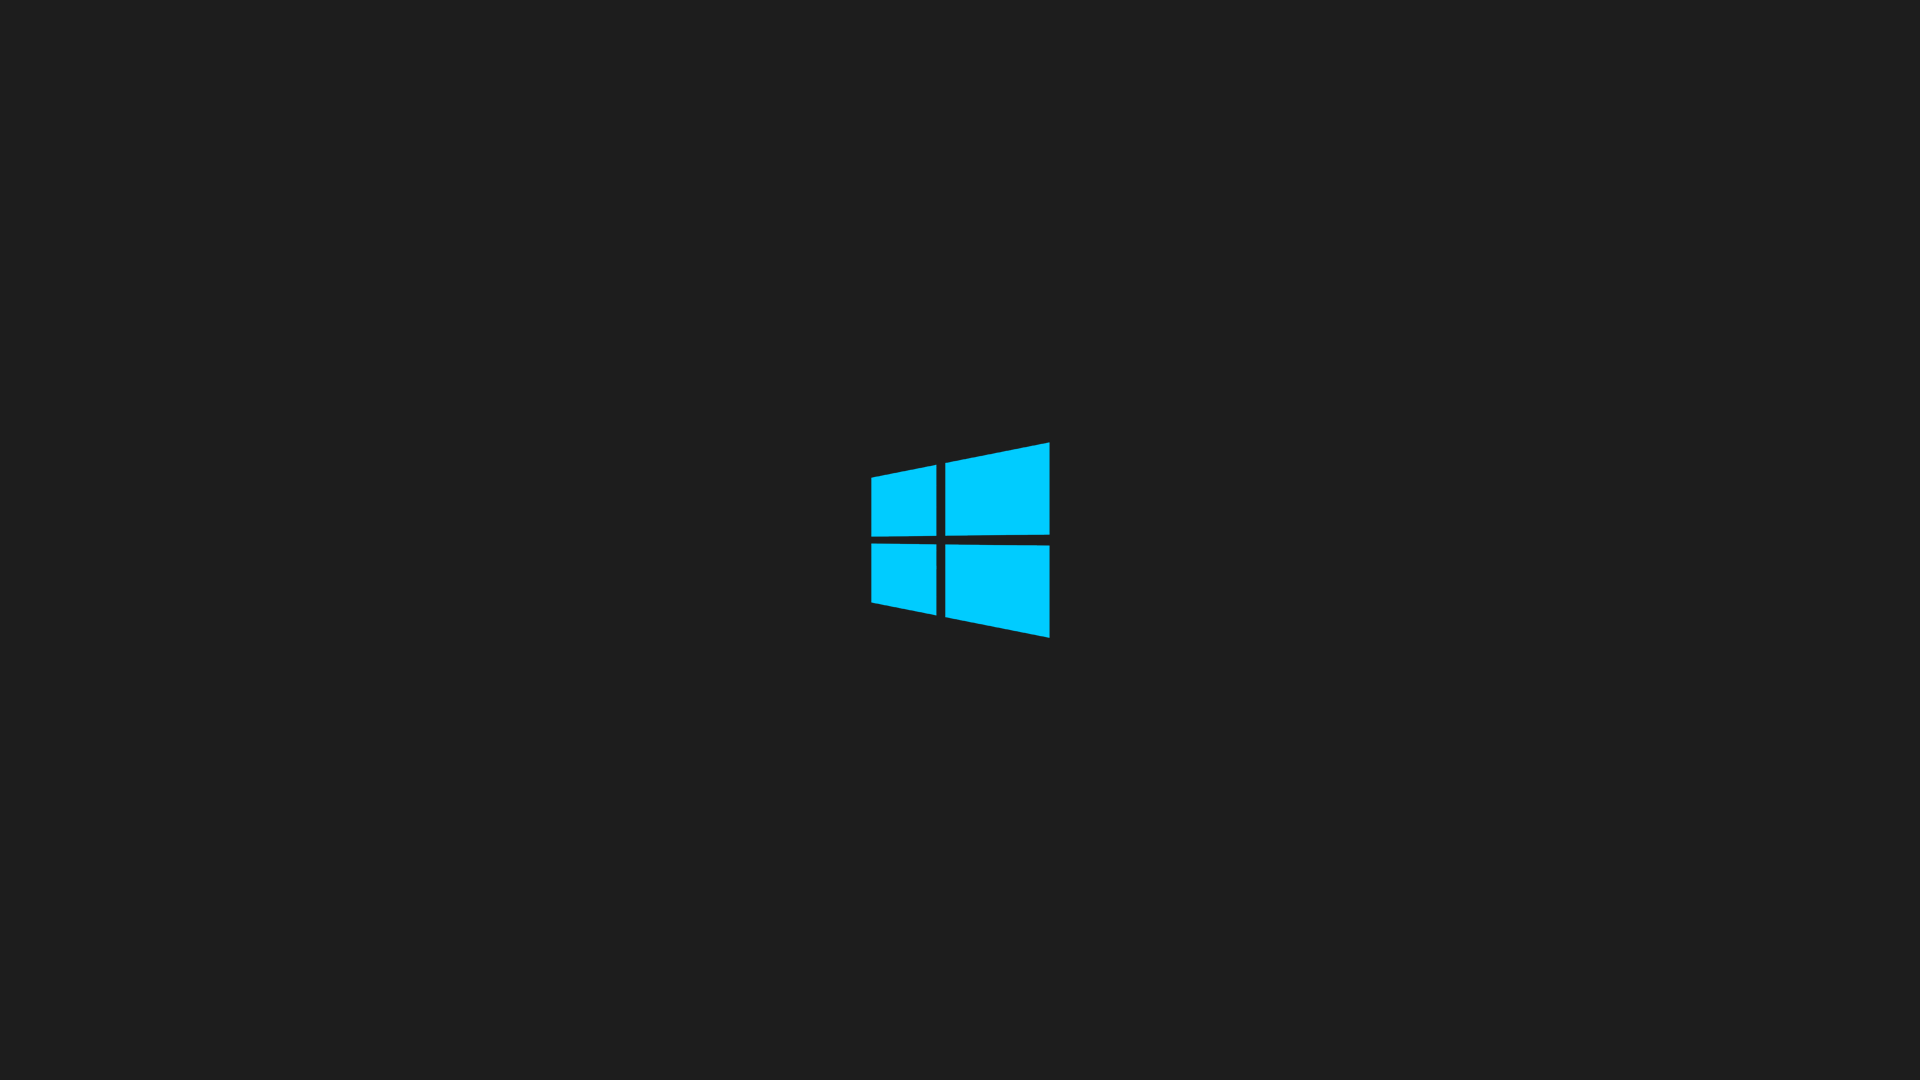 Windows 8 Wallpapers 1920x1080 | BsnSCB Graphics